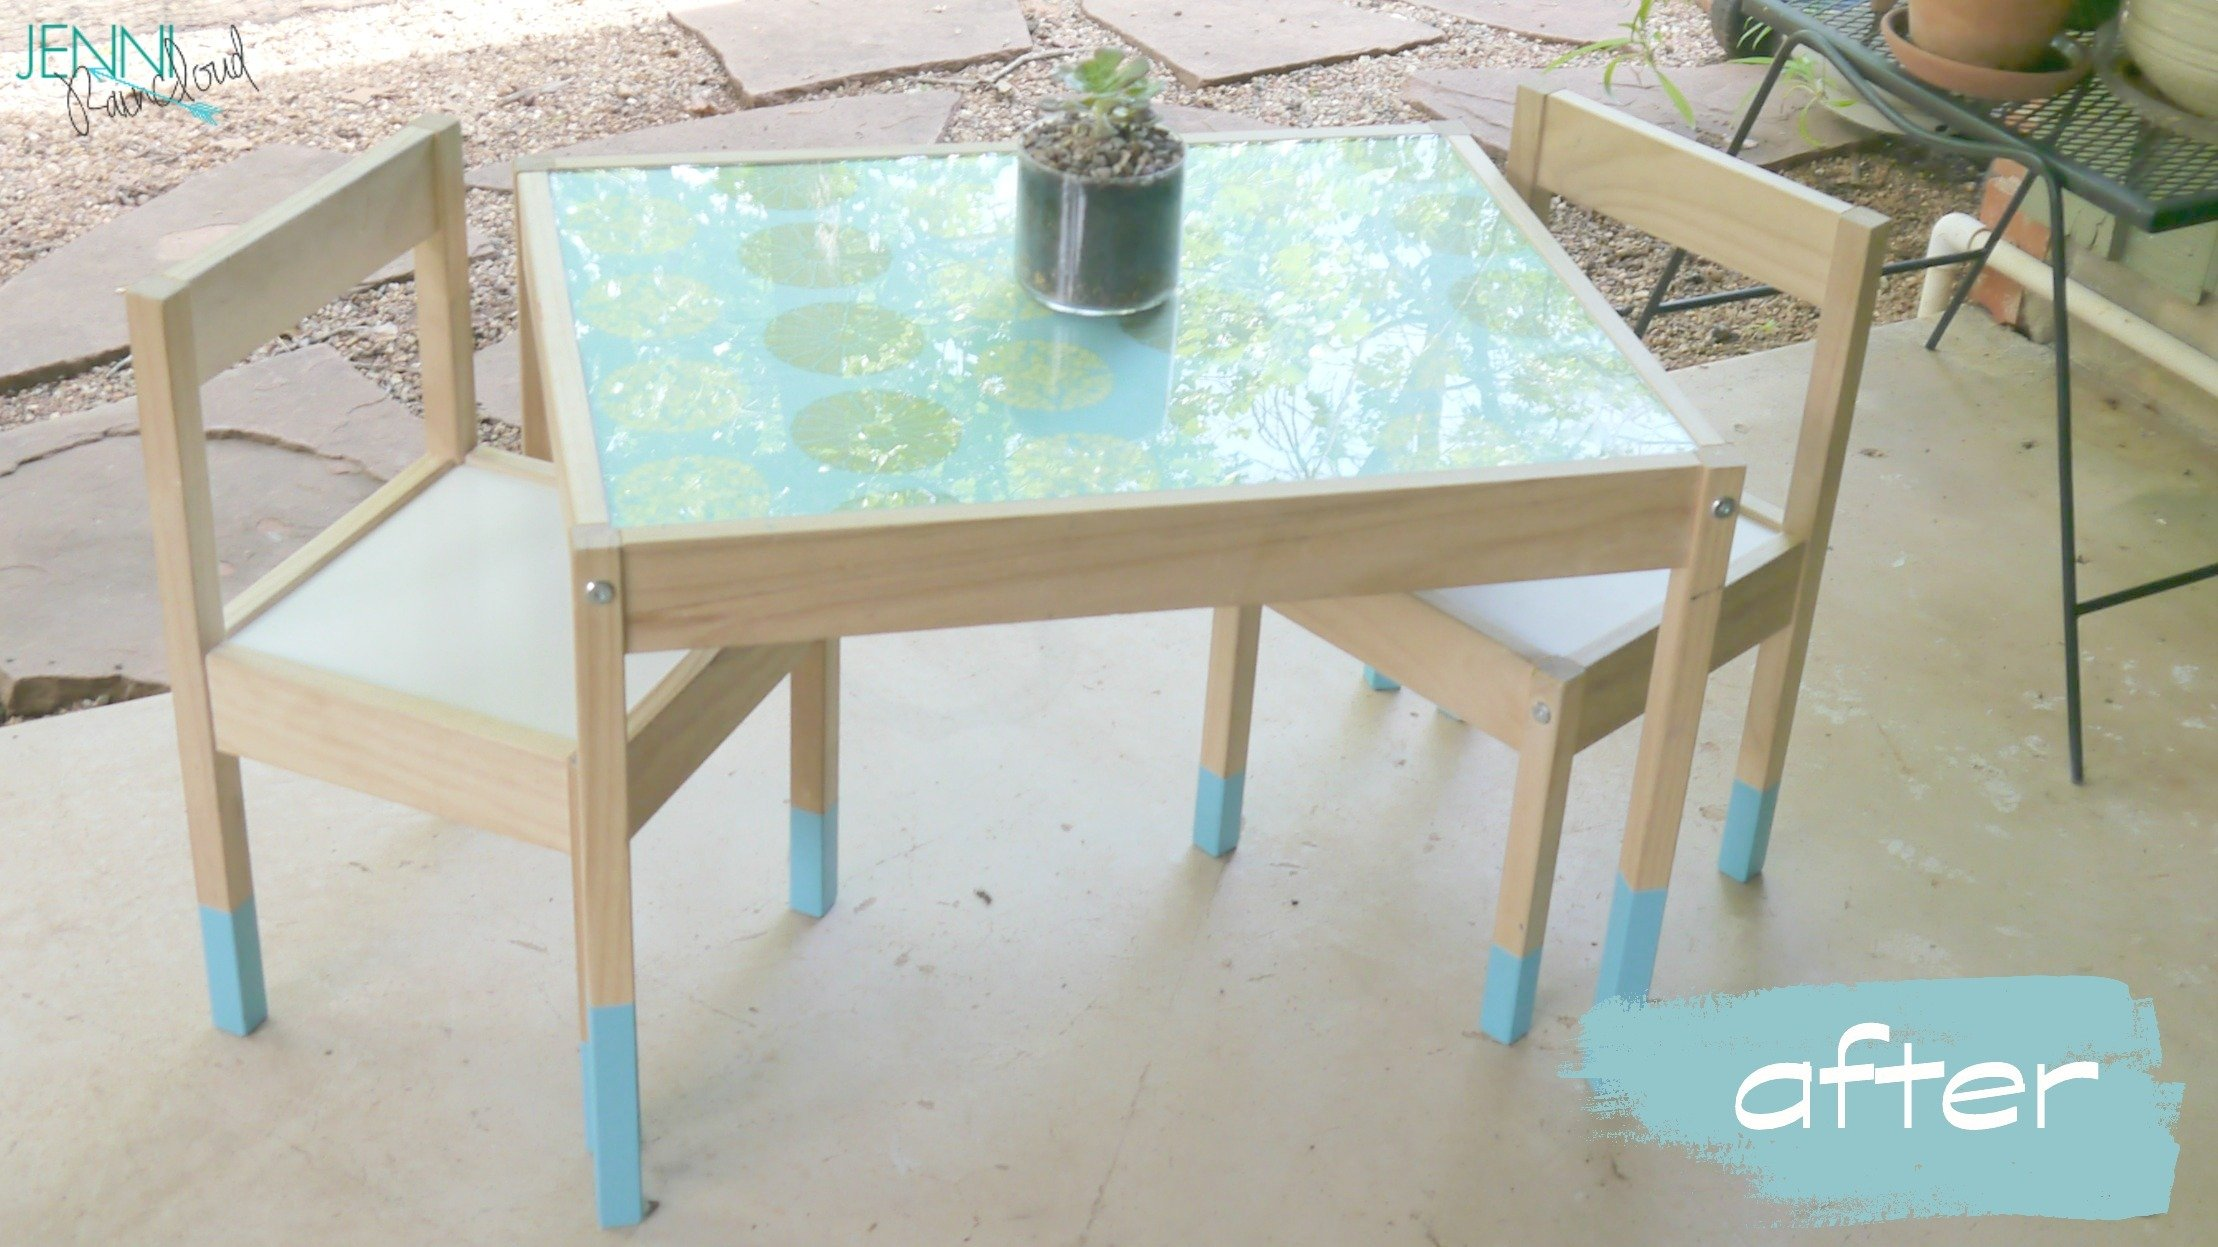 Ikea Hack Latt Children s Table